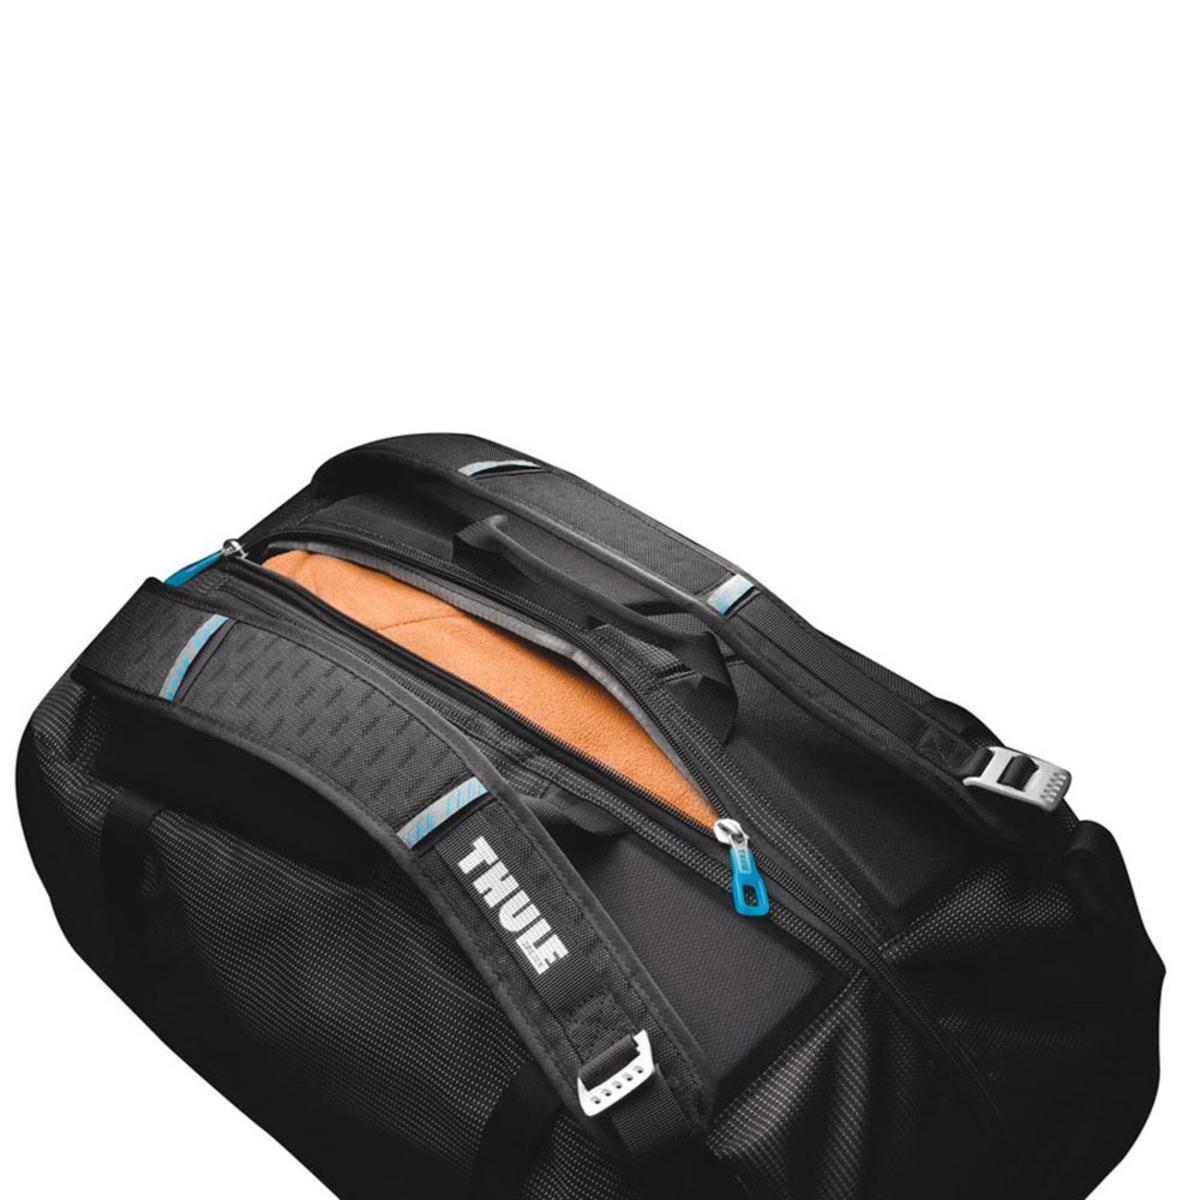 09de6197715b Thule Crossover Duffel Pack 40L - Black - The Warming Store